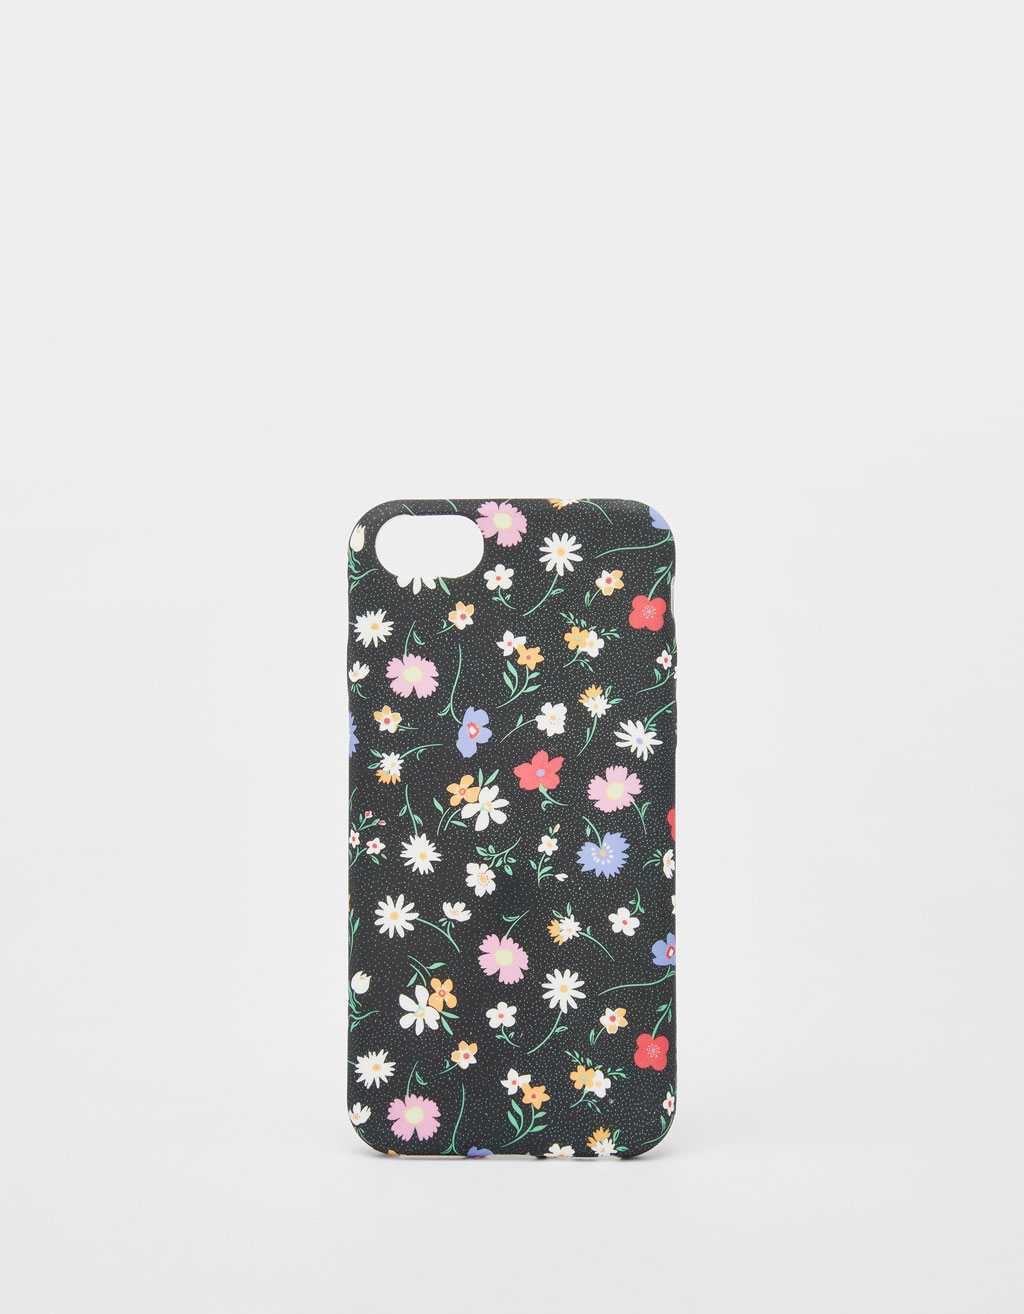 Mobilcover med blomsterprint til iPhone 6 / 6S / 7/ 8